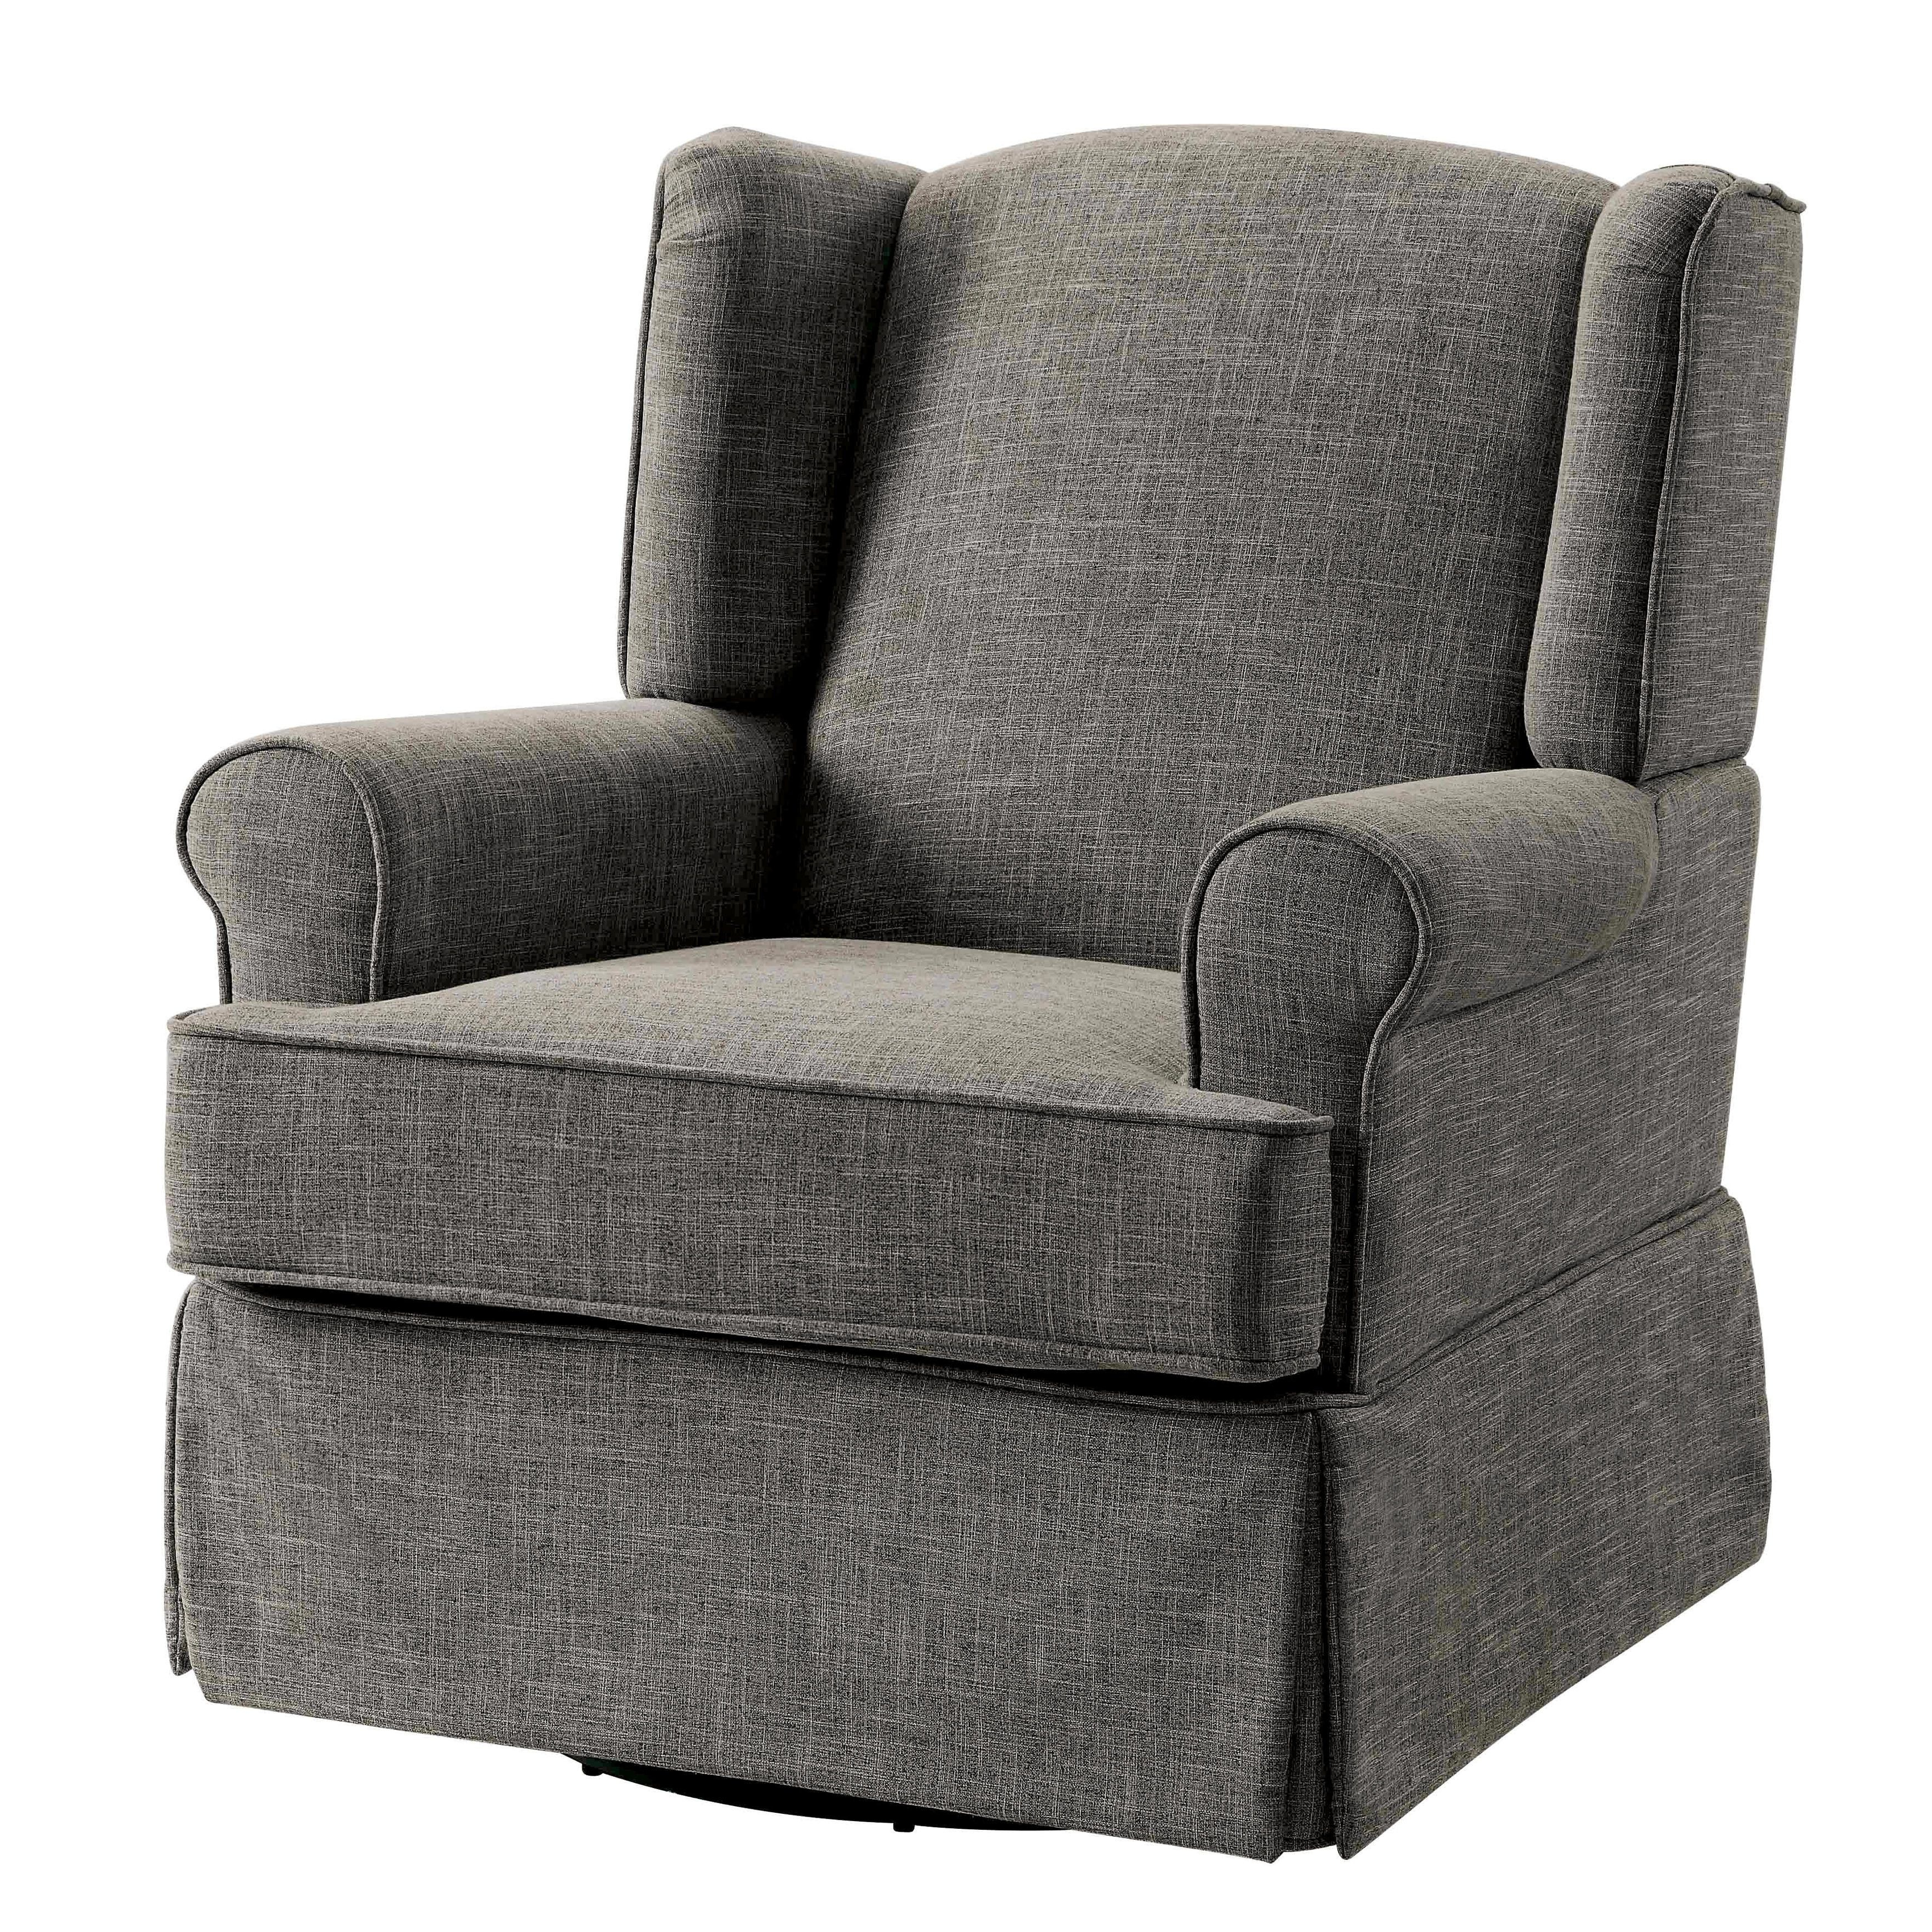 Furniture Of America Tuleran Transitional Wingback Glider Rocker Regarding Most Current Bailey Linen Flare Arm Wing Skirted Swivel Gliders (View 6 of 9)